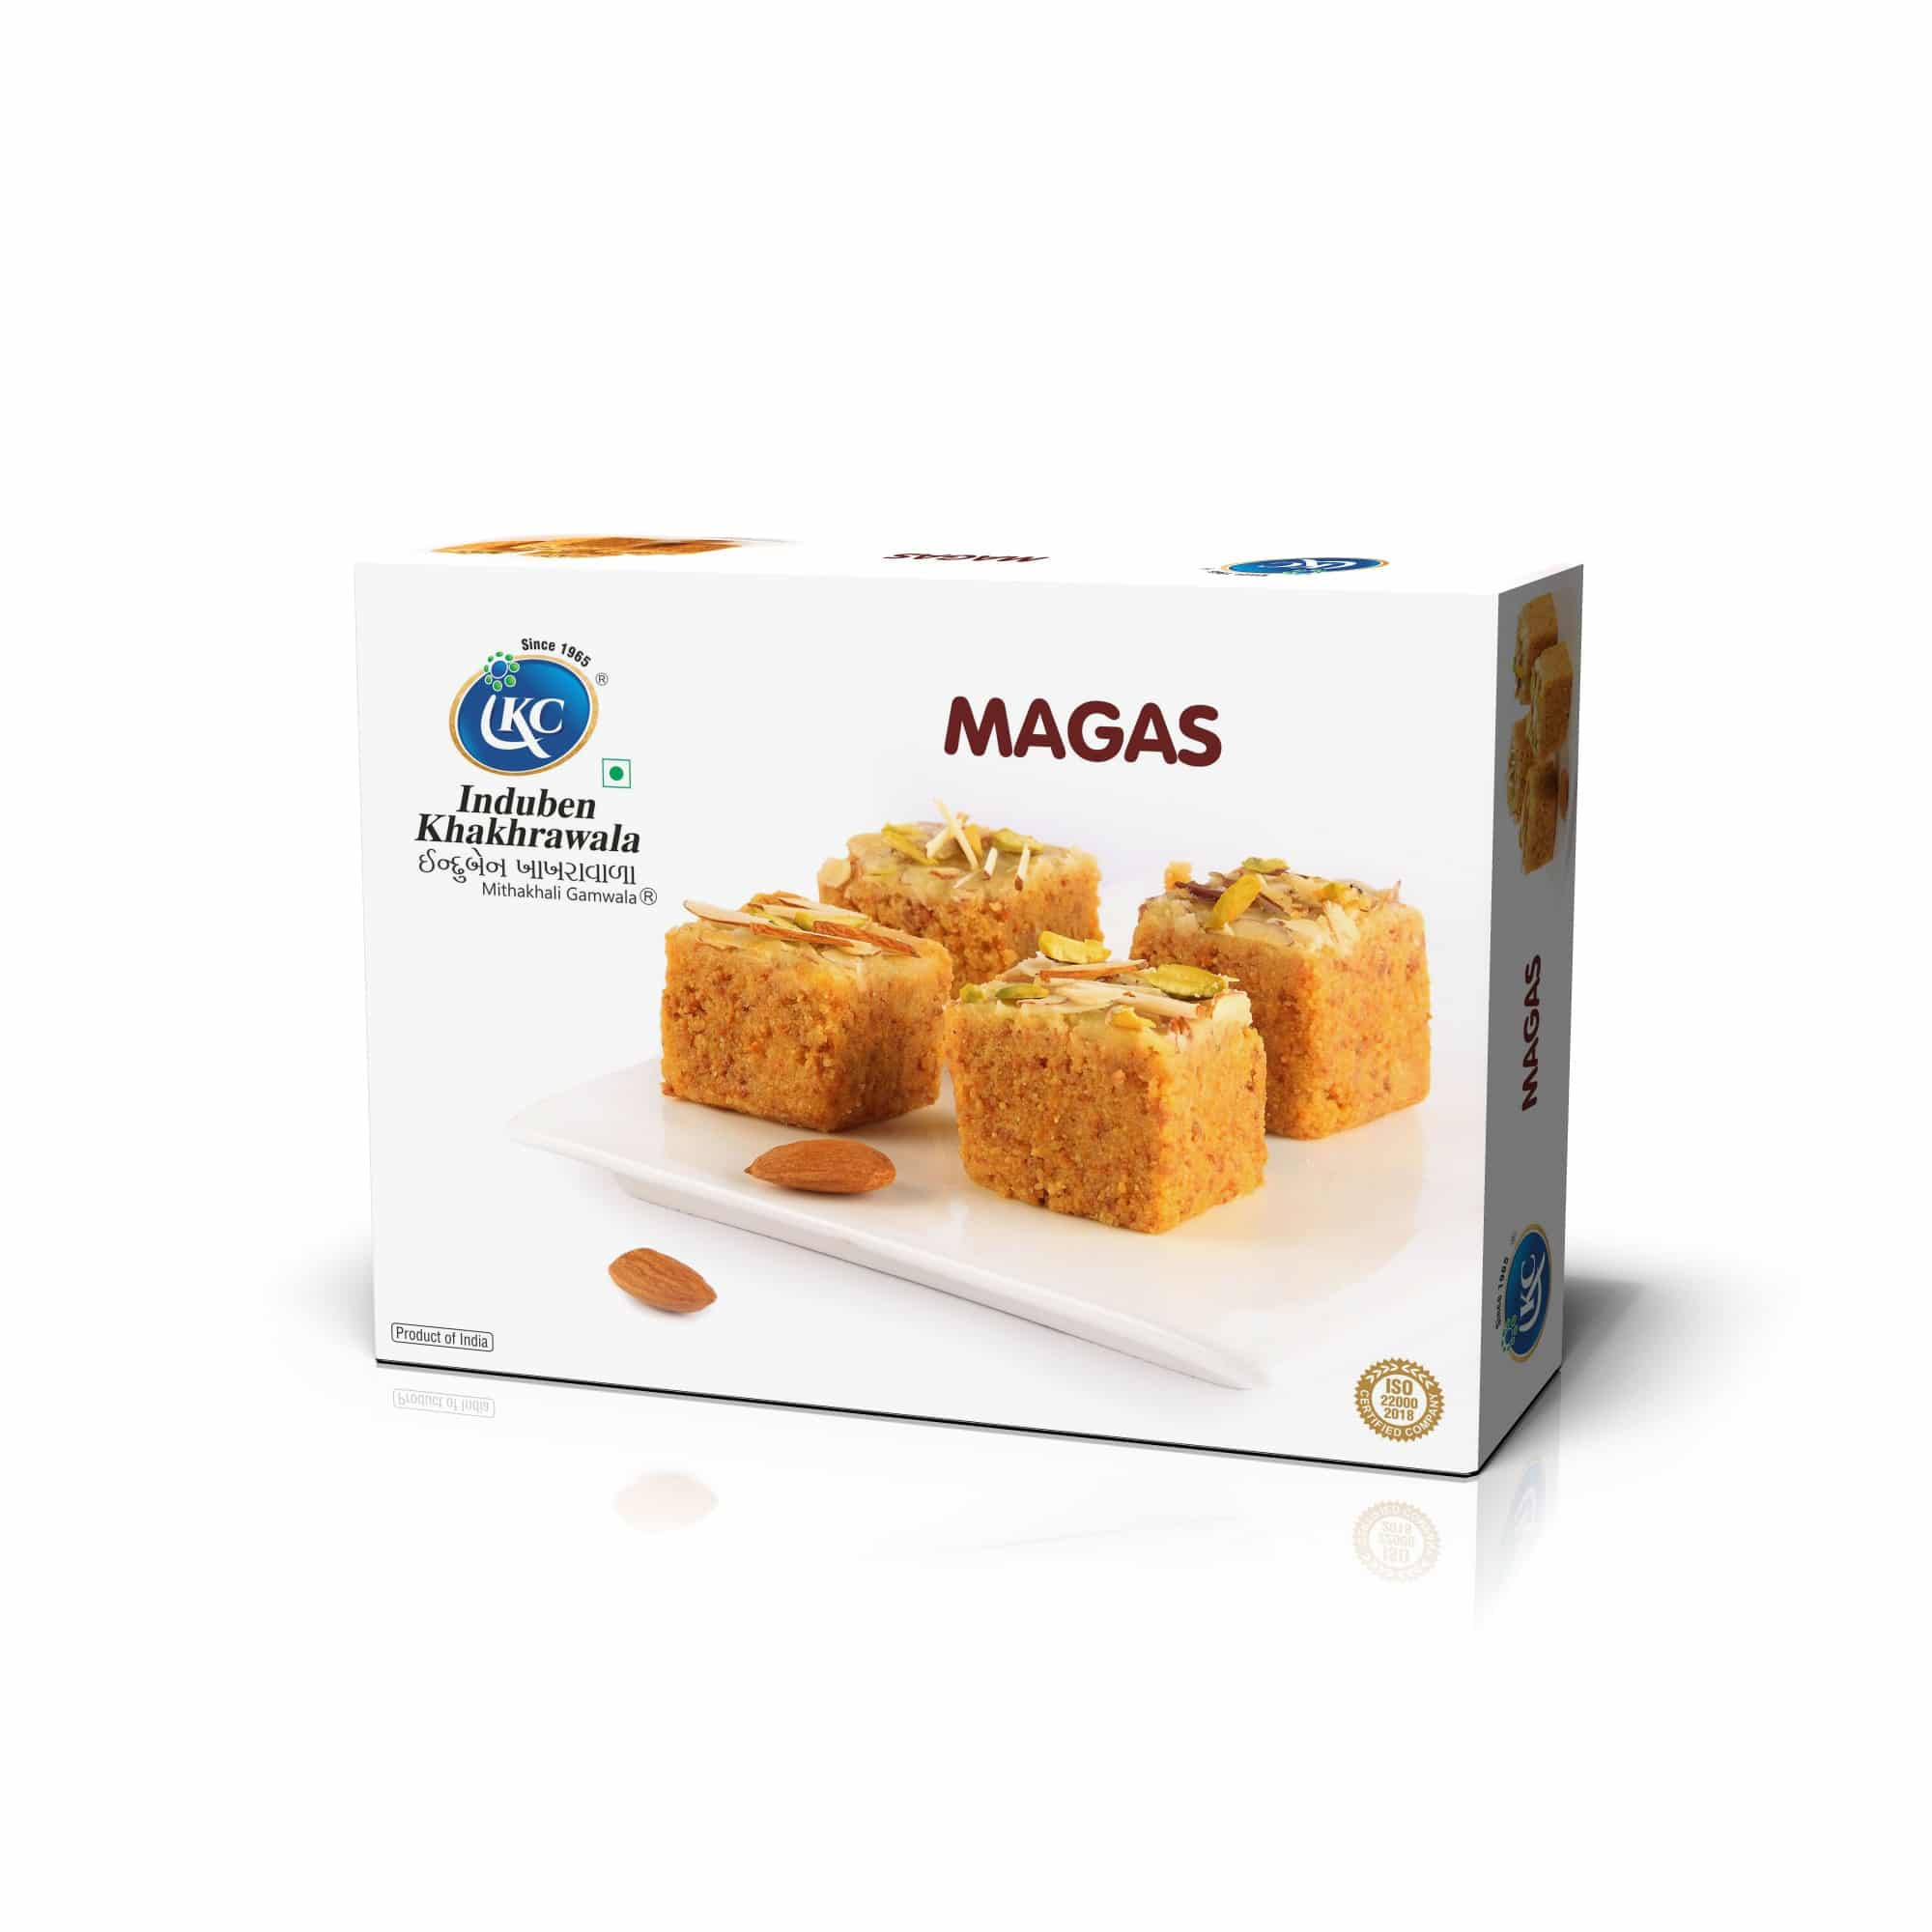 Buy Online Magas | Induben Khakhrawala | Traditional Indian Sweets From Induben, Get Latest Price & Recipe Of Magas Sweets.